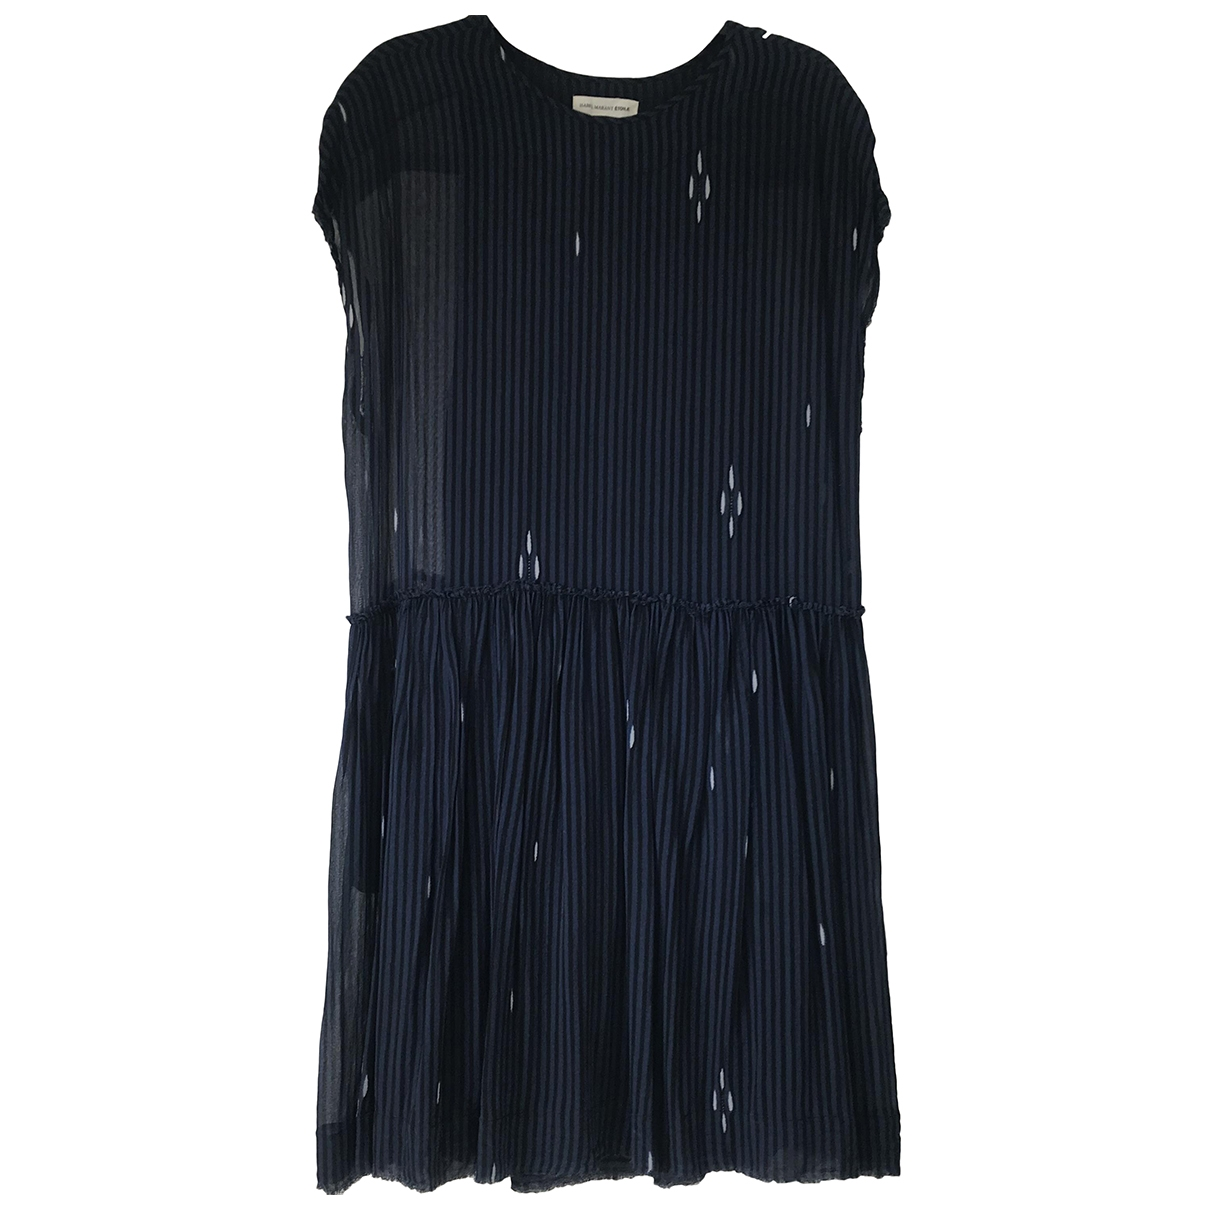 Isabel Marant Etoile \N Blue dress for Women 36 FR